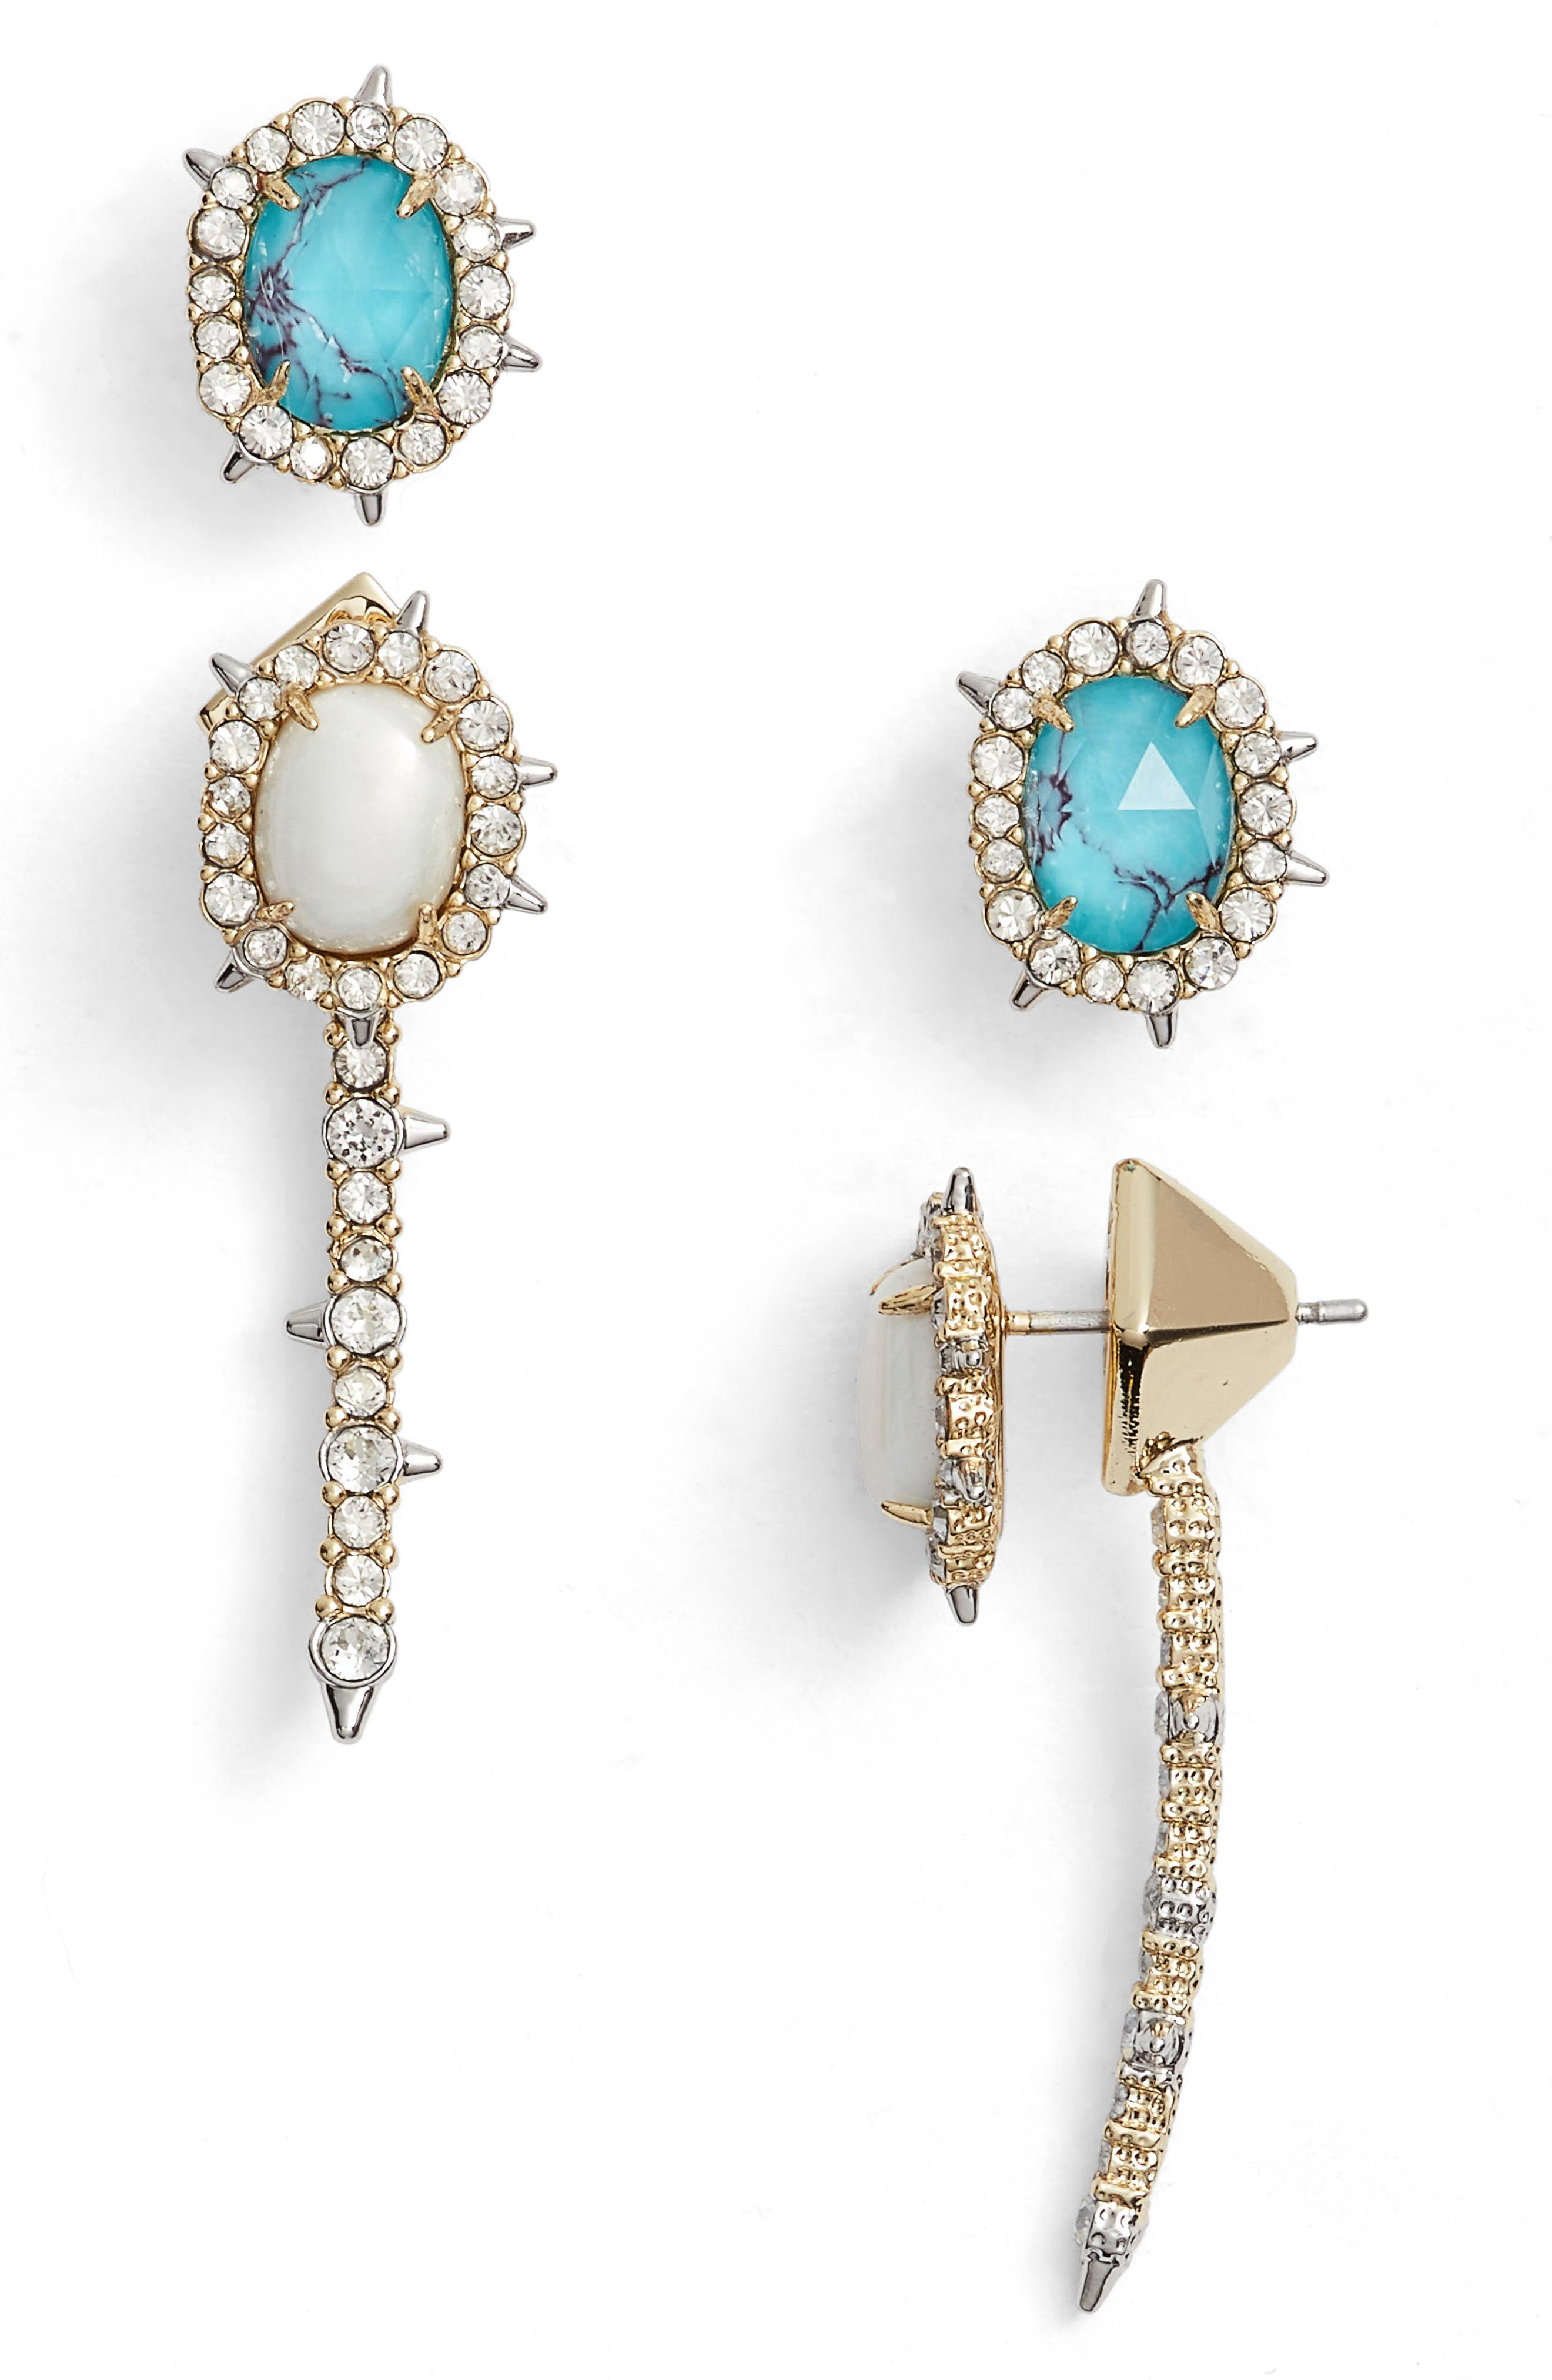 Alexis Bittars Set of Ear Jacket & Stud Earrings